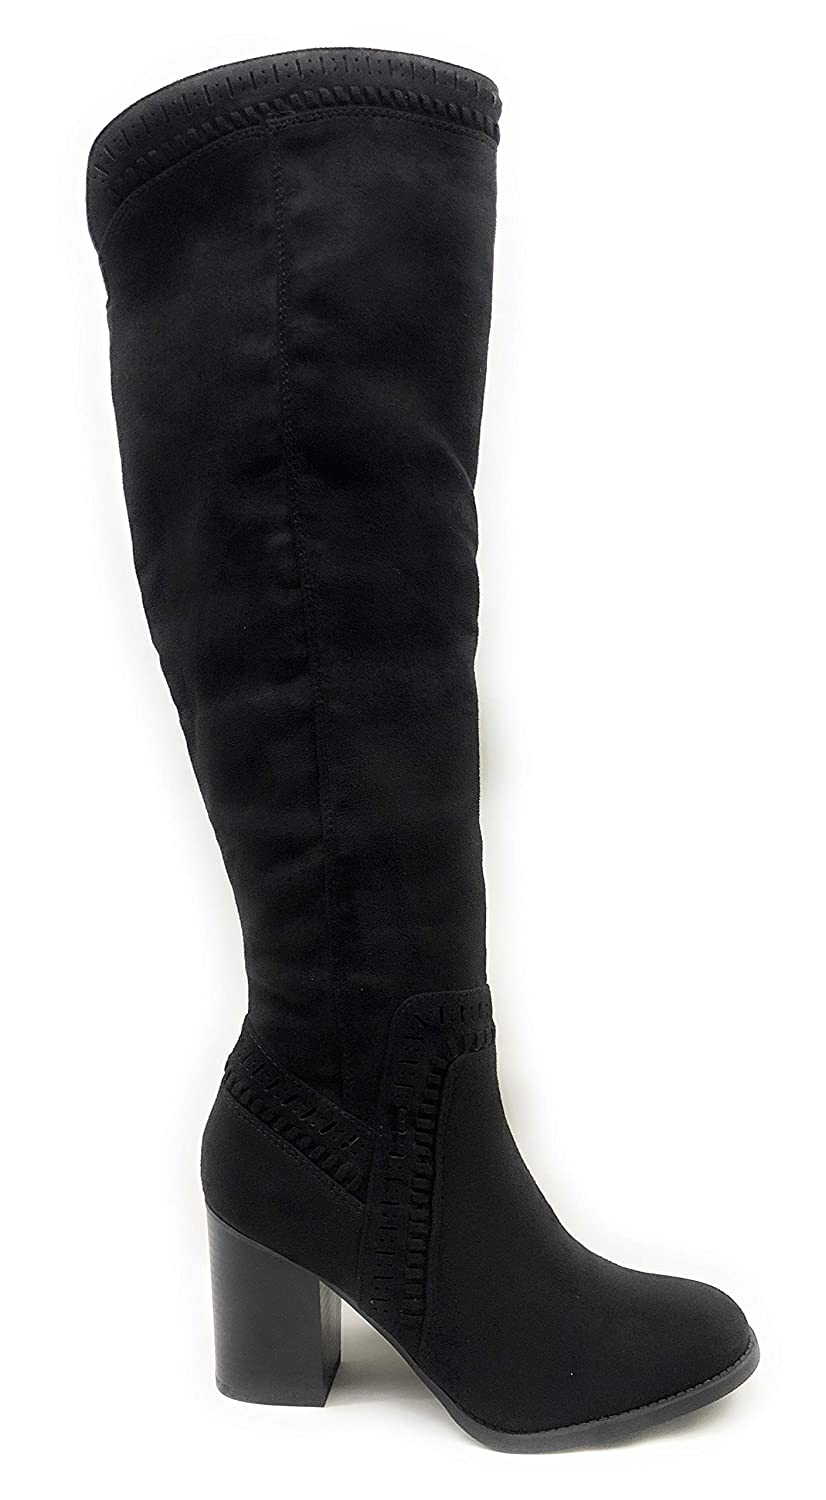 Black Imsu Soda Women's Faux Suede Back Tie Over The Knee Low Heel Dress Boot